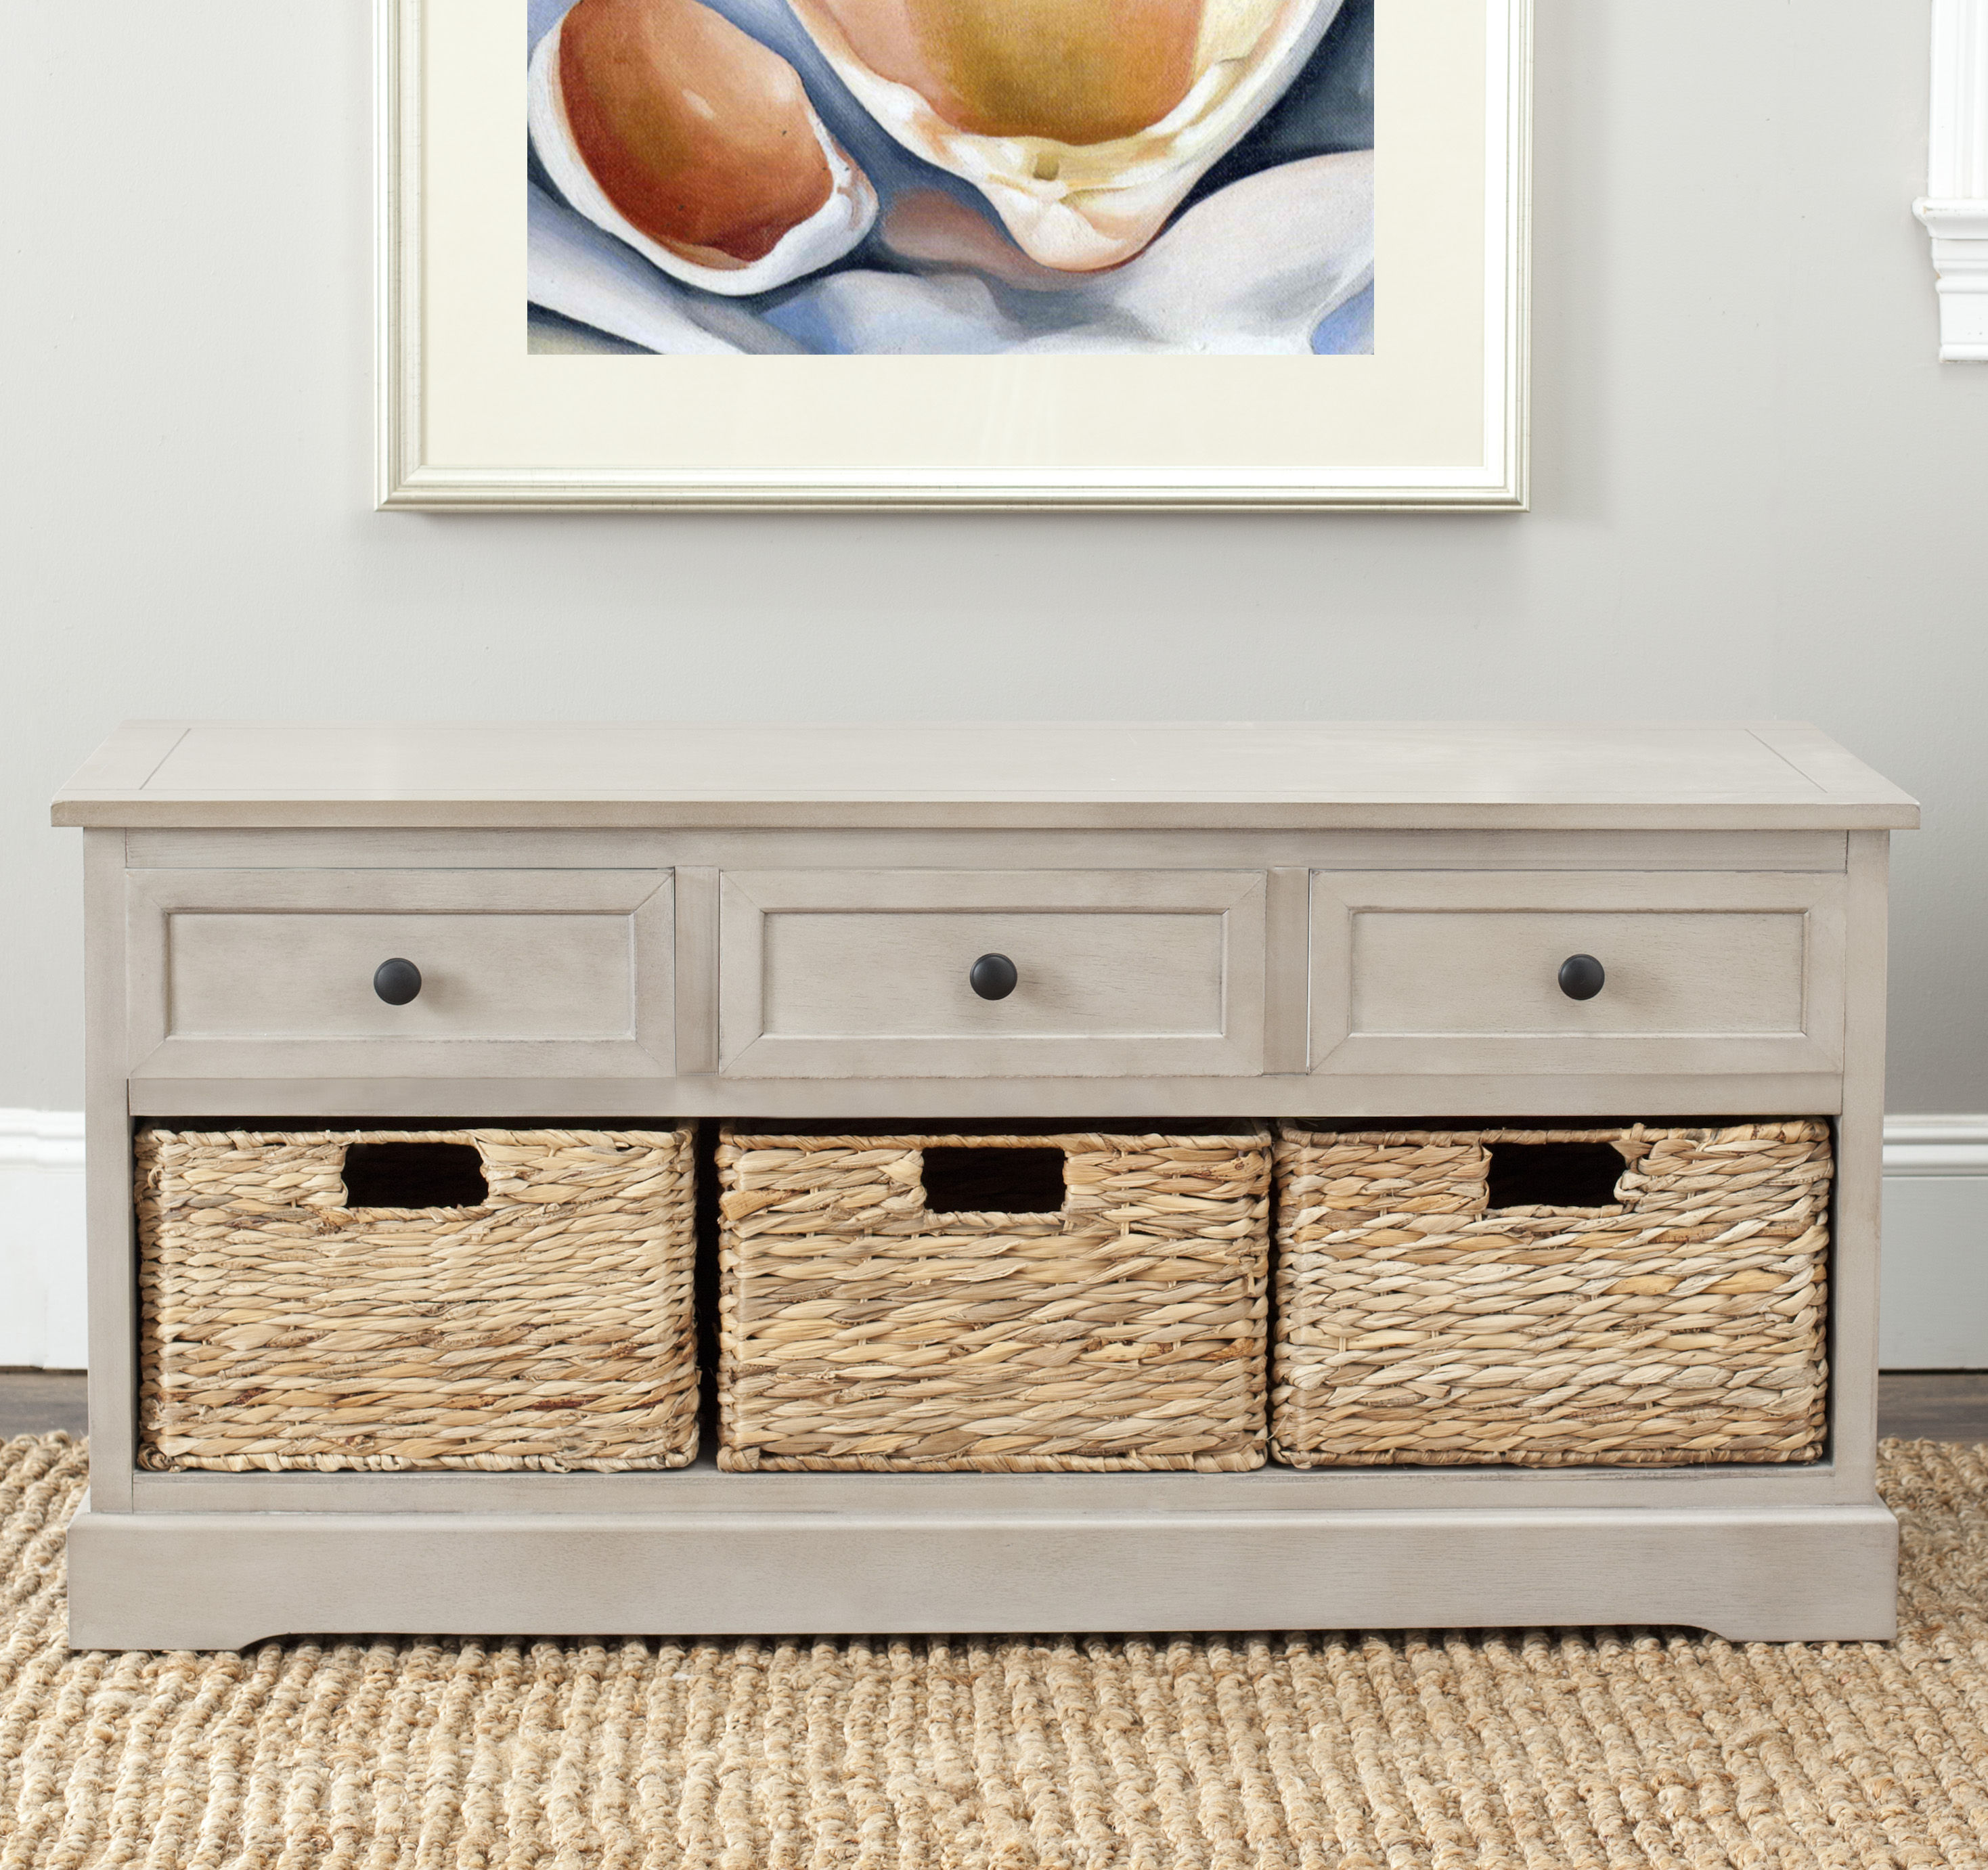 Safavieh Damien 3-Drawer Storage Unit